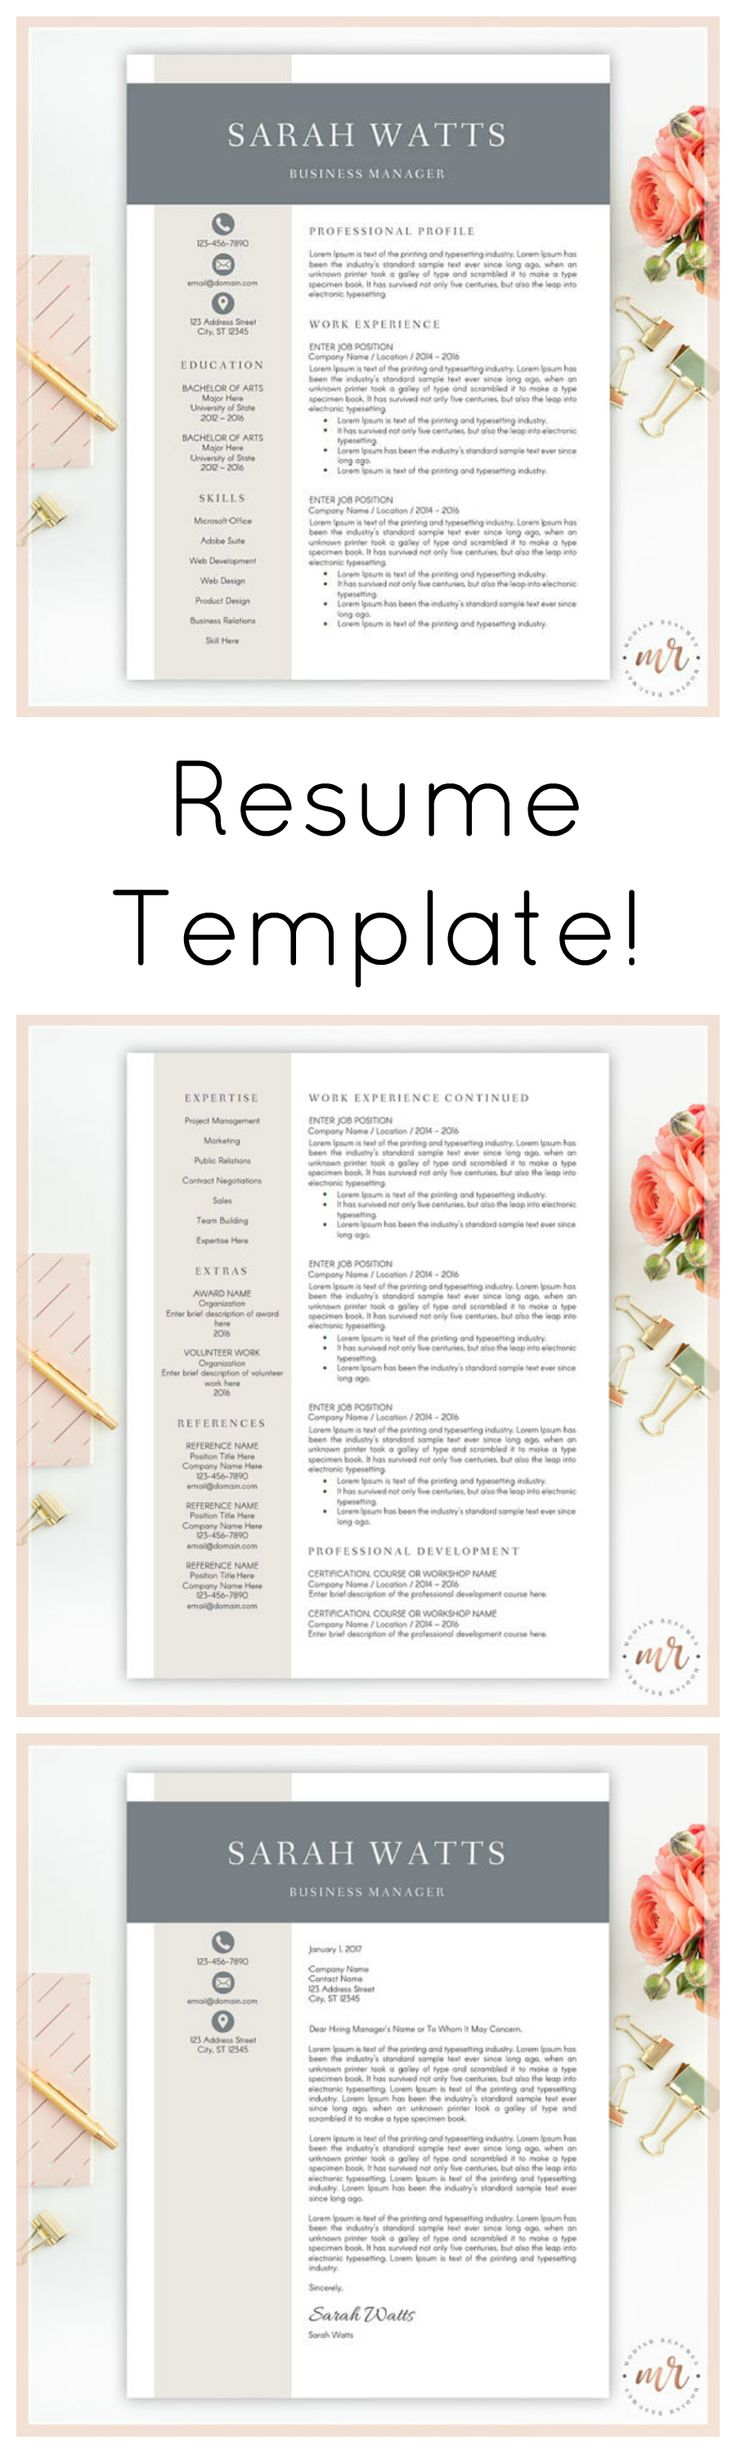 Love this stylish and professional resume template! Impress hirers and recruiters! Improve the look and feel of your resume with this resume template designed for use in Microsoft Word. Includes resume template, optional second page, cover letter and references sheet. All colors, including icon colors, can be changed directly in Word. #resume #cv #template #resumetemplate #cvtemplate #professional #jobhunting #career #ad